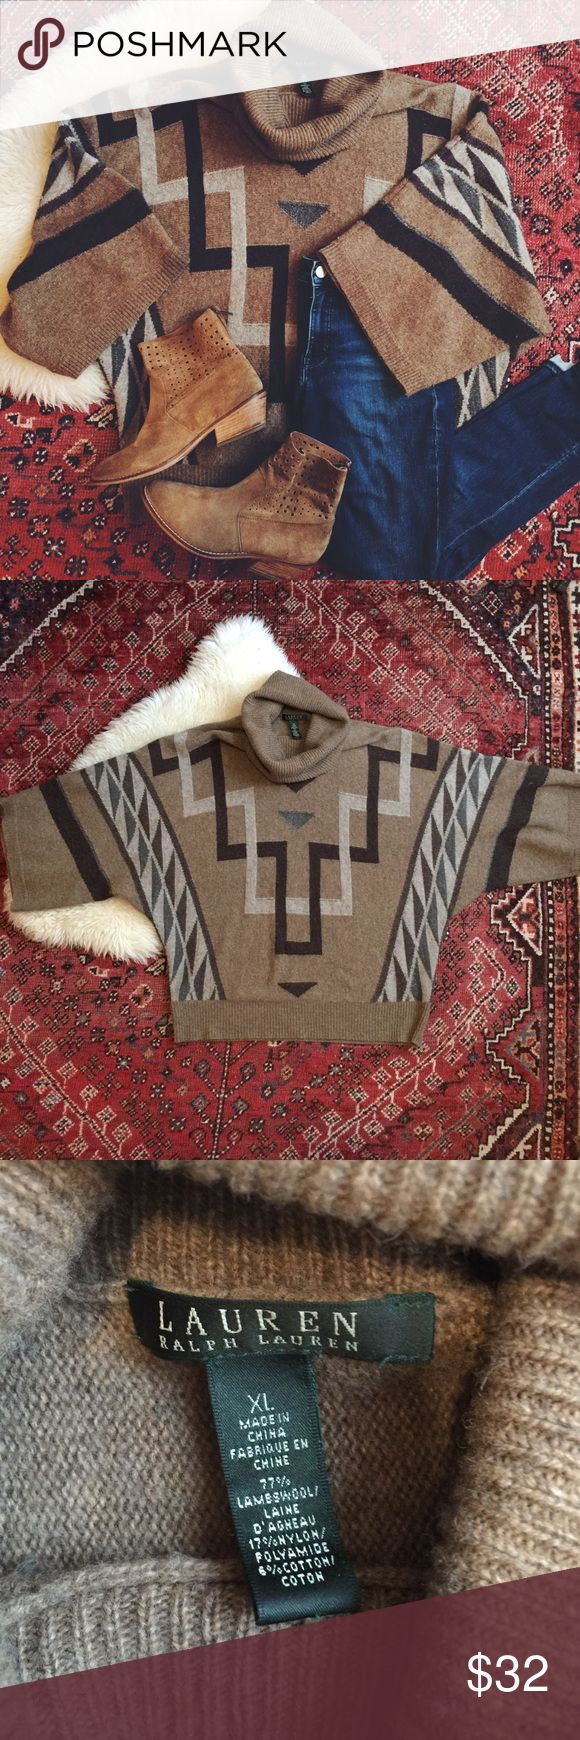 Vintage 90s Ralph Lauren Western Sweater Amazing dolman sleeve sweater in geometric western boho pattern. Softest lambswool means not scratchy!  Turtleneck collar to keep you warm!  Good vintage condition with some pilling, but no holes or stains. Sized XL but would totally work on a range of sizes as an oversized poncho style.     Boots also for sale, check my listings for other boho and great vintage finds! Lauren Ralph Lauren Sweaters